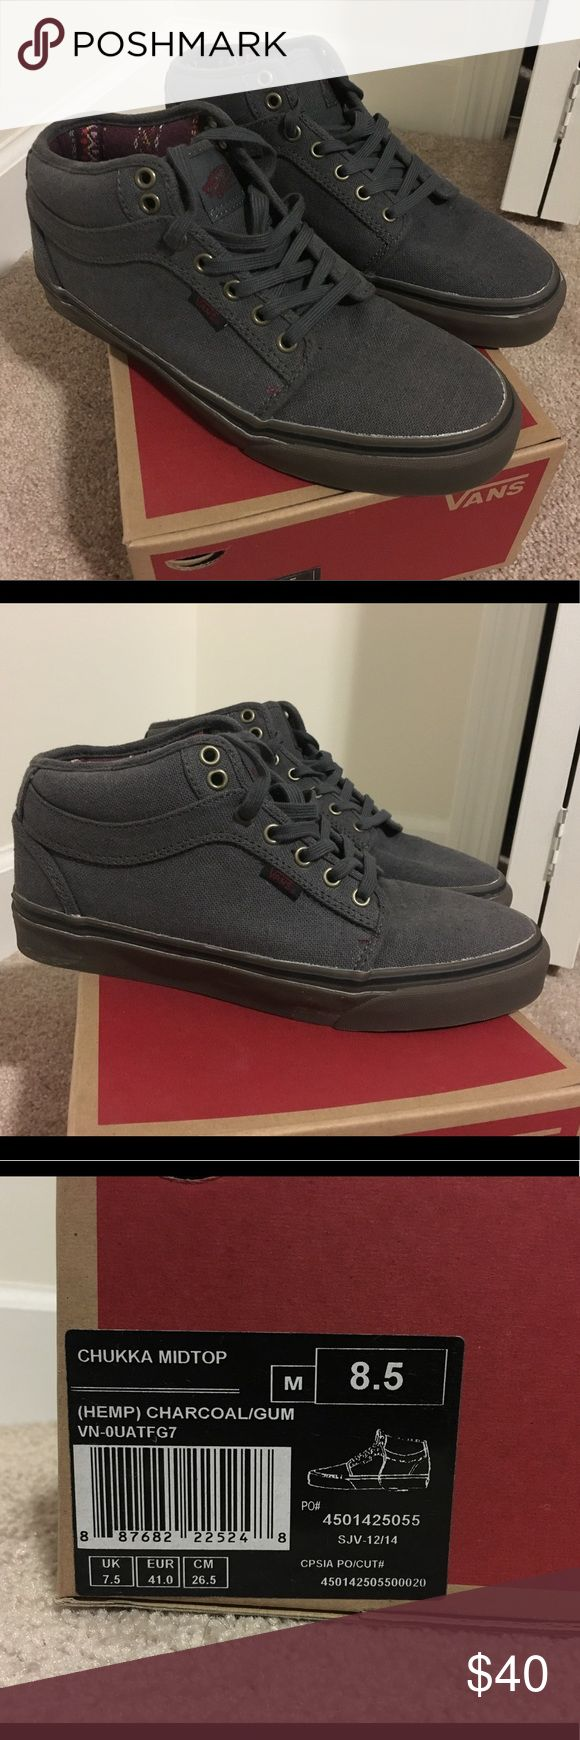 Vans Chukka Midtop Charcoal Worn Once, excellent condition and super comfortable Vans Shoes Chukka Boots